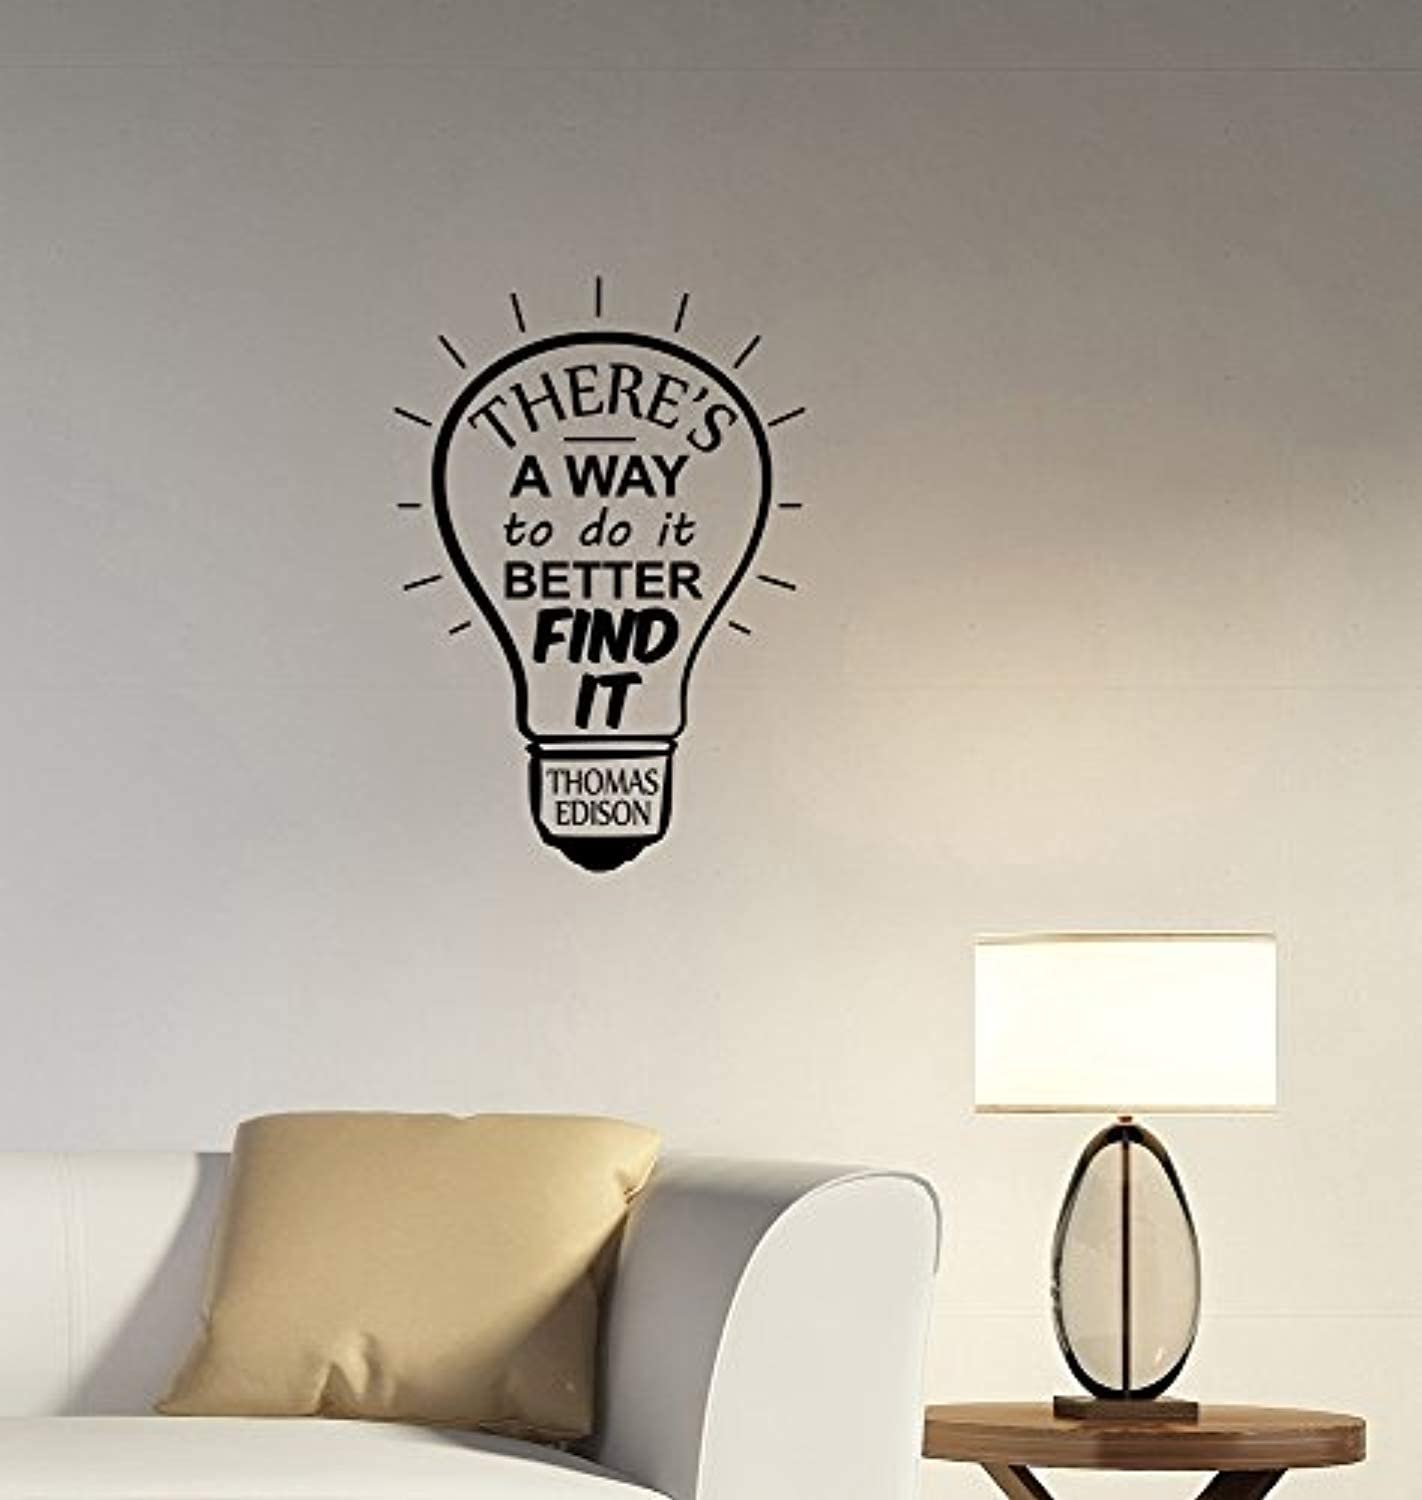 There's a Way To Do It Better Thomas Edison Motivational Quote Wall Decal Light Bulb Vinyl Sticker Science Business Inspirational Saying Art Decorations for Home Classroom Office Room Decor tq1